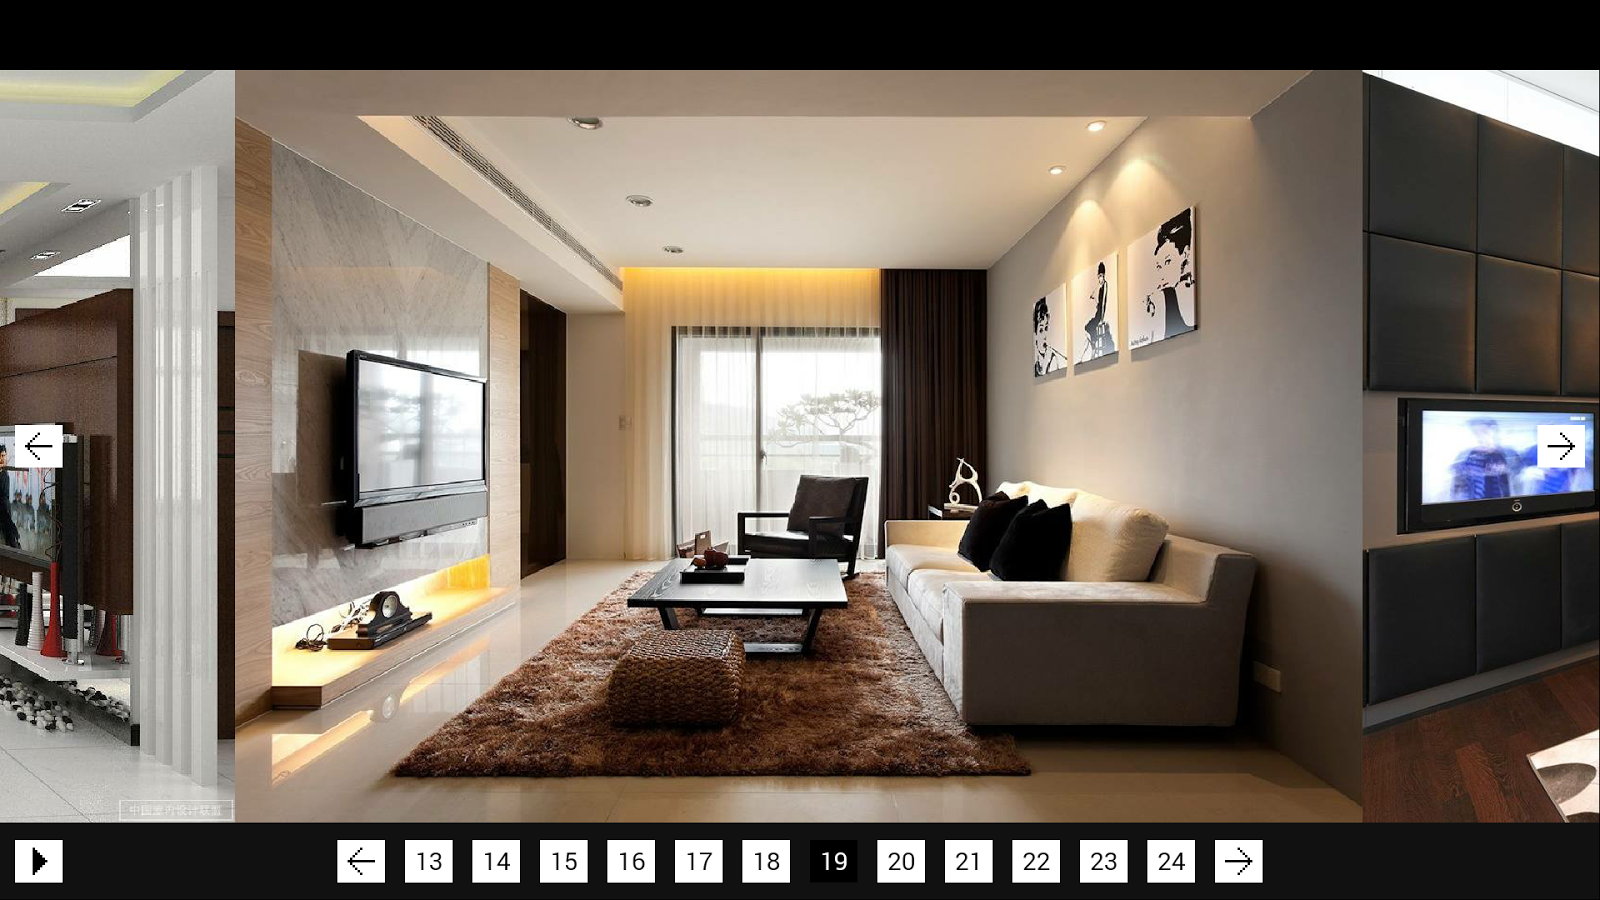 Home interior design android apps on google play for Home design images